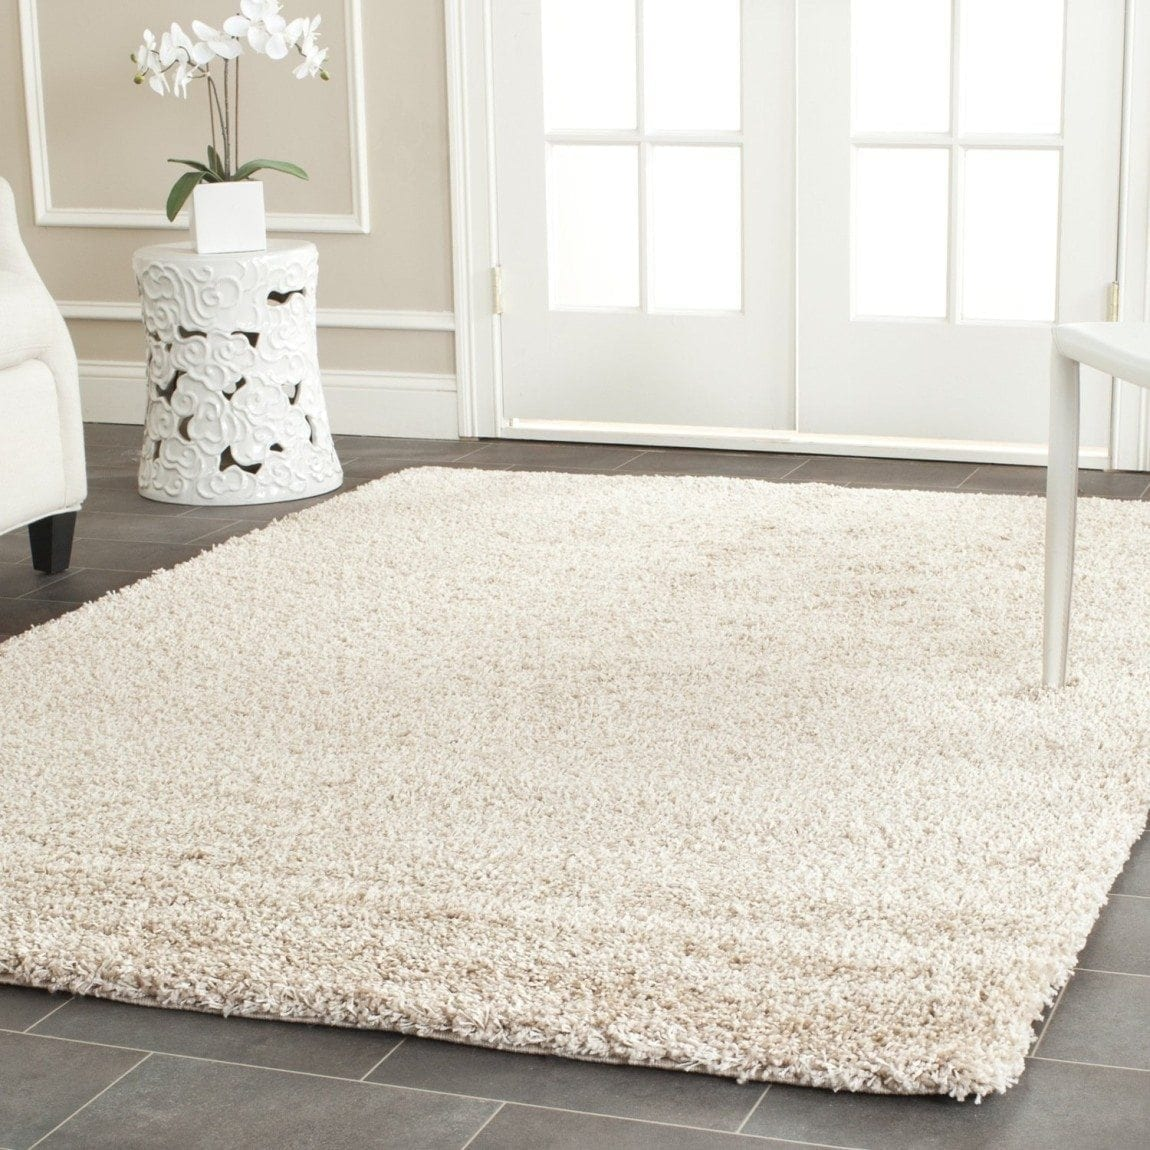 Safavieh California Shag Collection SG151-1313 Beige Shag Area Rug, 8 feet by 10 feet (8' x 10')